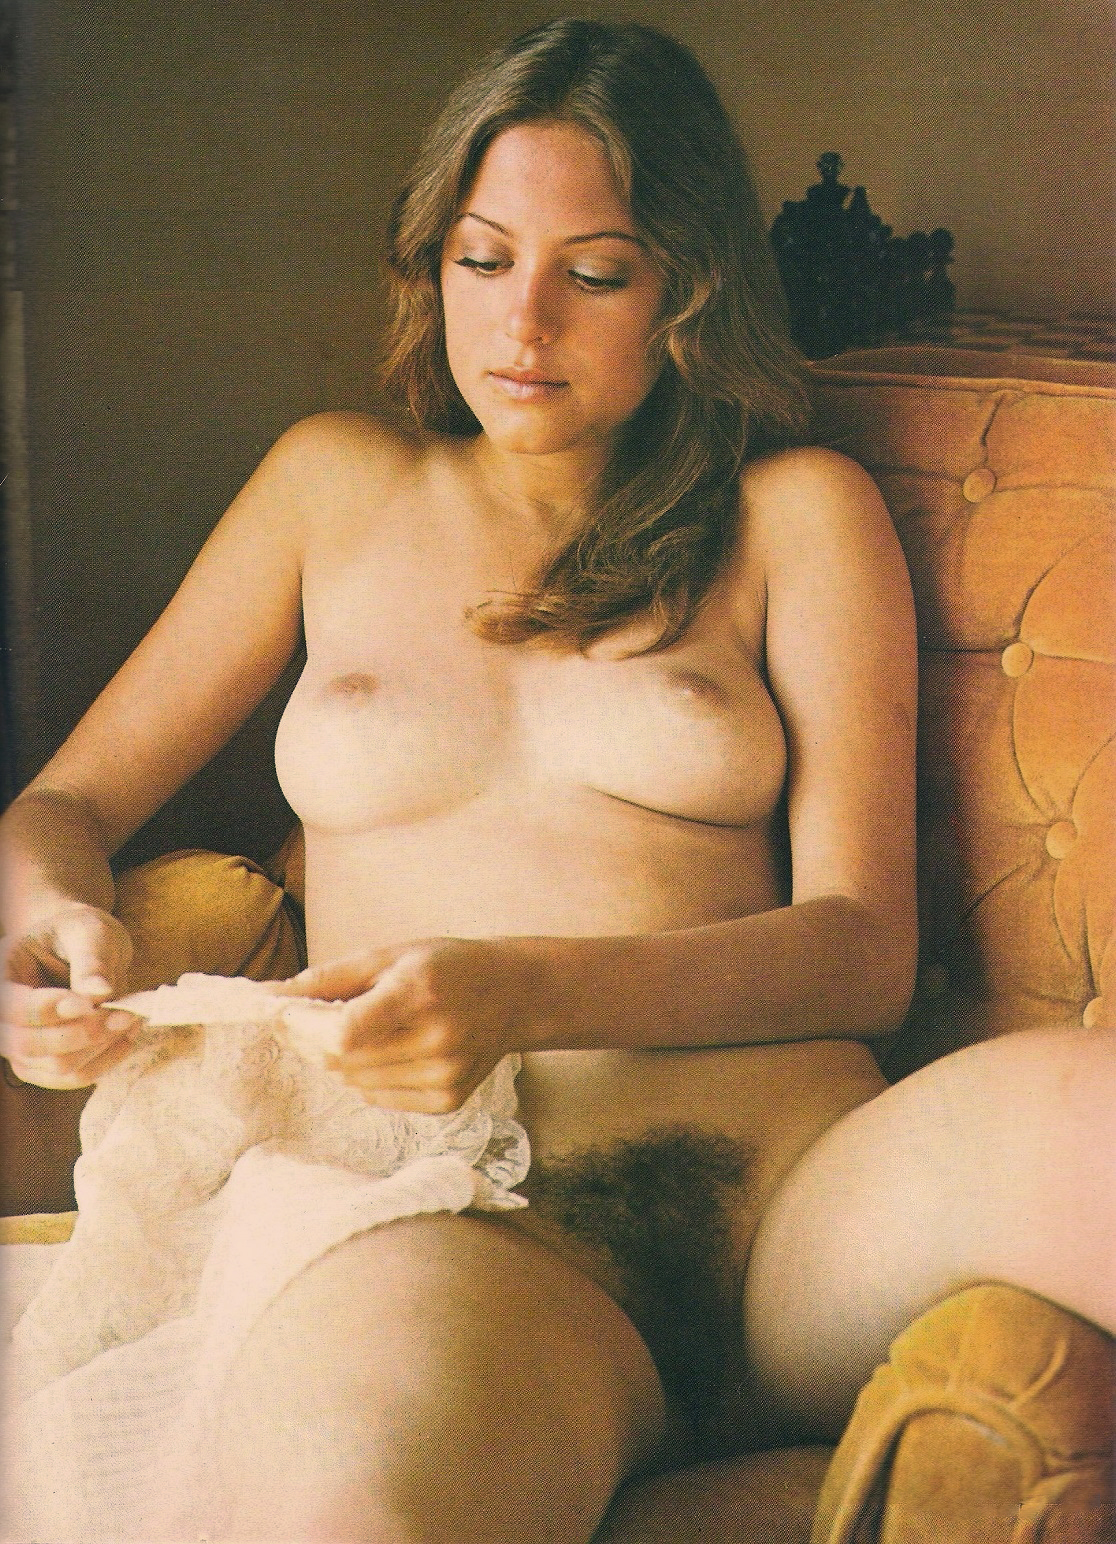 real amateur wife tubes